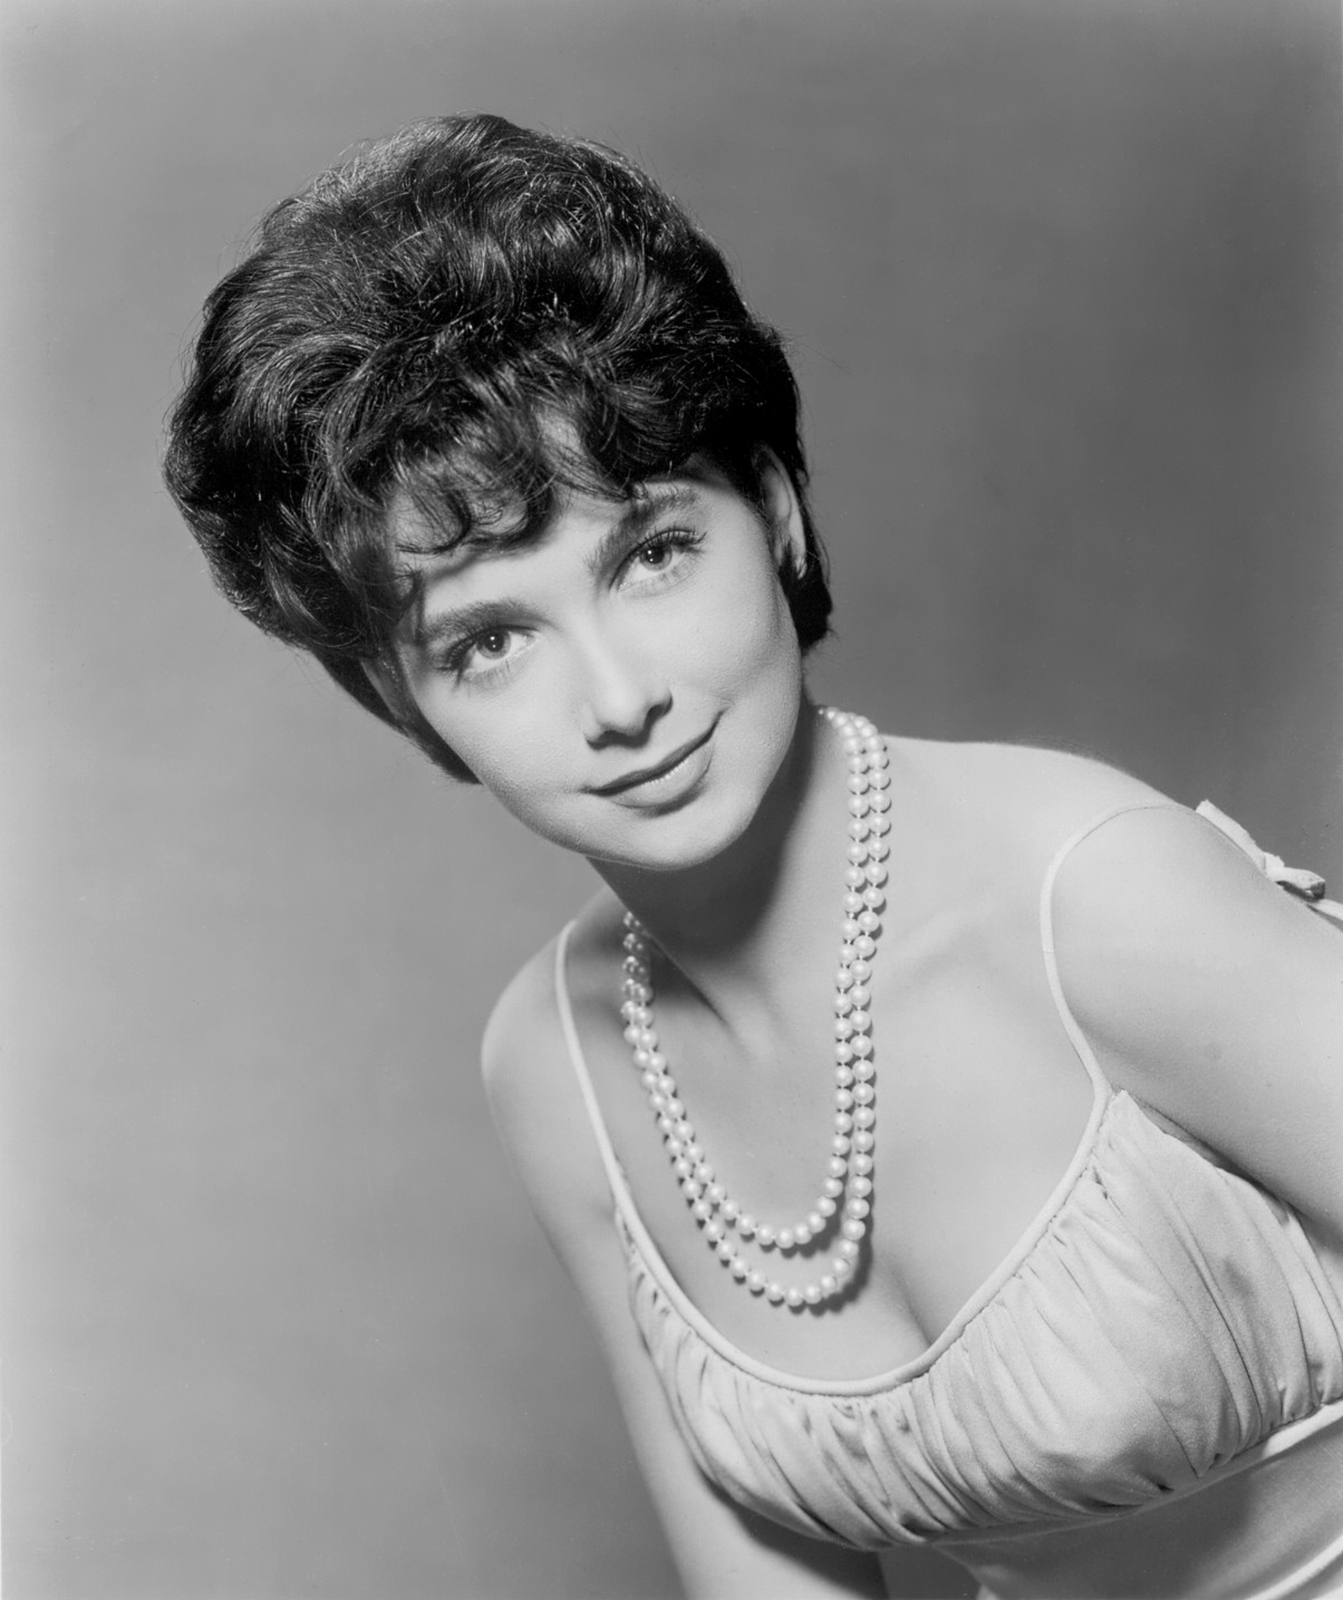 suzanne pleshette funeralsuzanne pleshette photo, suzanne pleshette wiki, suzanne pleshette images, suzanne pleshette quotes, suzanne pleshette voice acting, suzanne pleshette 2008, suzanne pleshette the birds, suzanne pleshette death, suzanne pleshette imdb, suzanne pleshette funeral, suzanne pleshette tommy gallagher, suzanne pleshette troy donahue, suzanne pleshette measurements, suzanne pleshette net worth, suzanne pleshette feet, suzanne pleshette voice, suzanne pleshette columbo, suzanne pleshette smoking, suzanne pleshette obituary